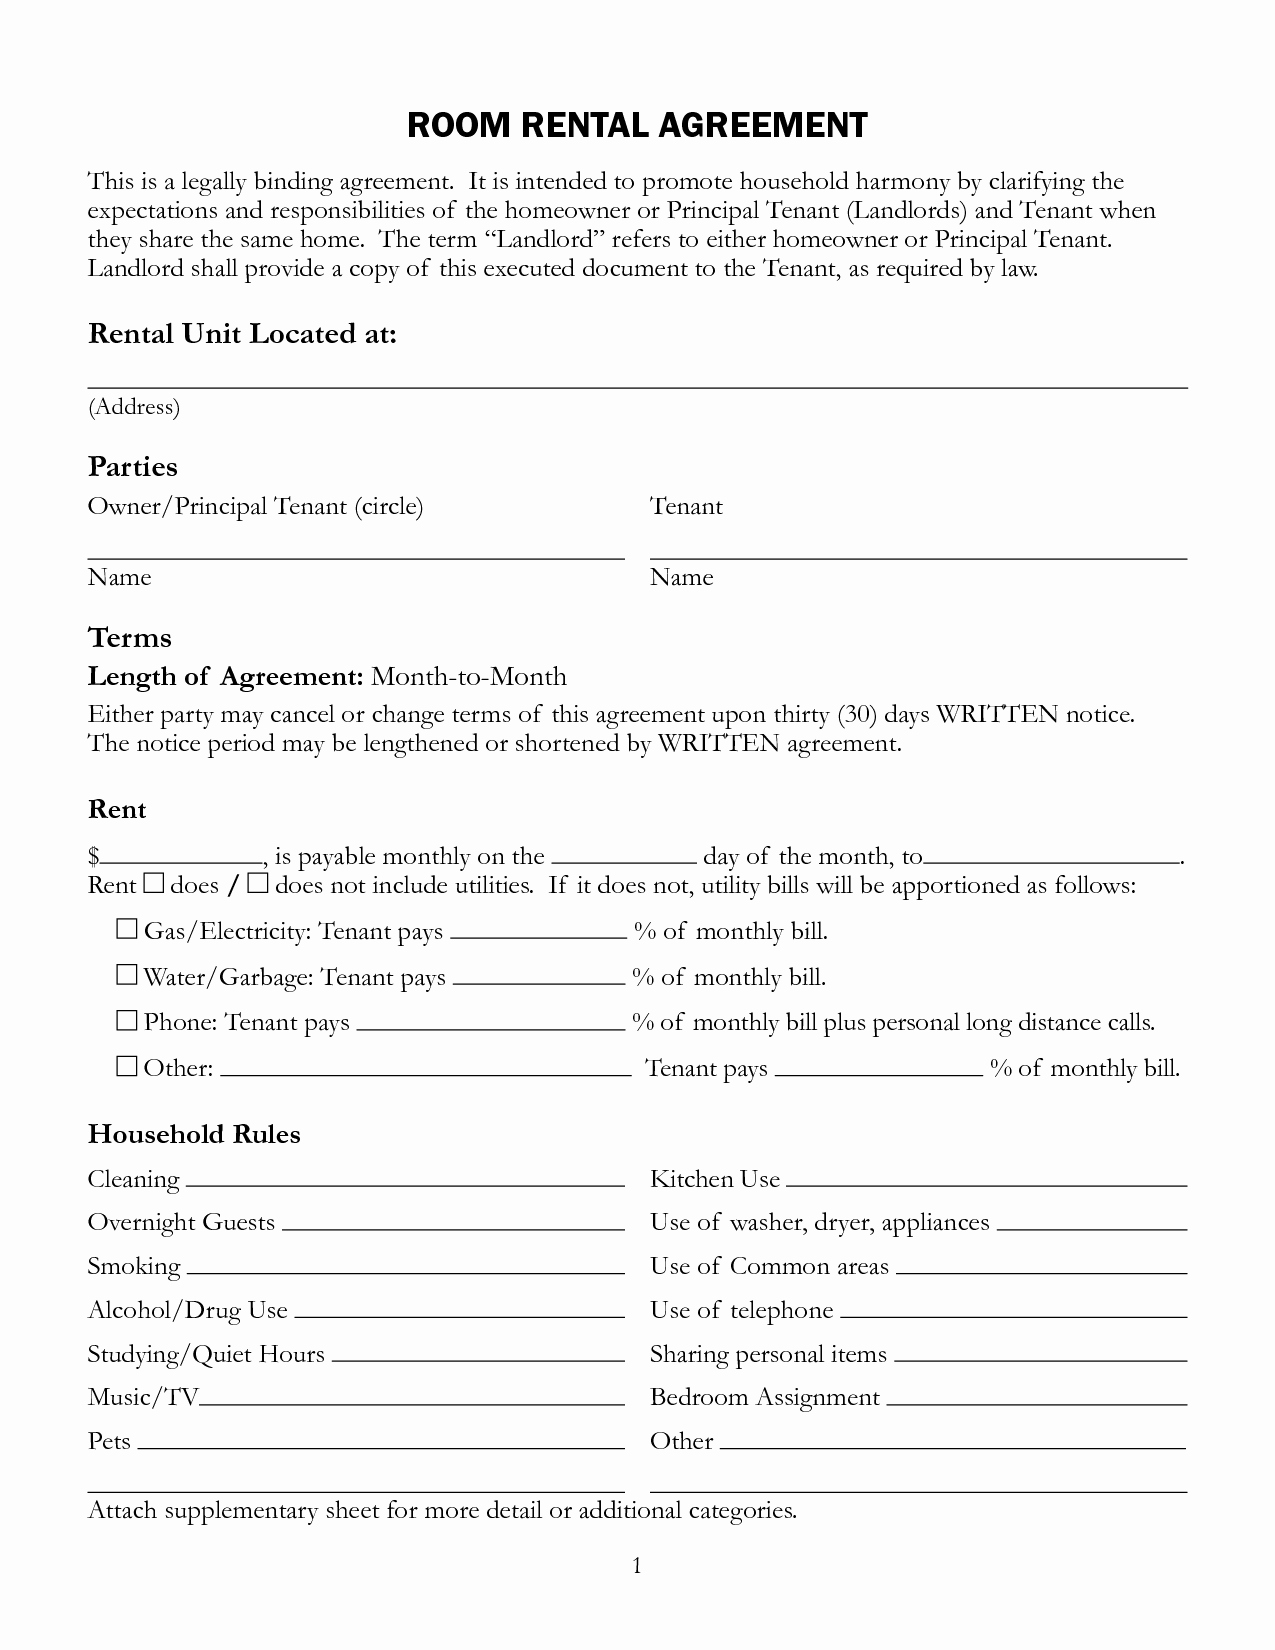 Free Rental Agreement Template New Pin by Berty Zulfianna On Share In 2019